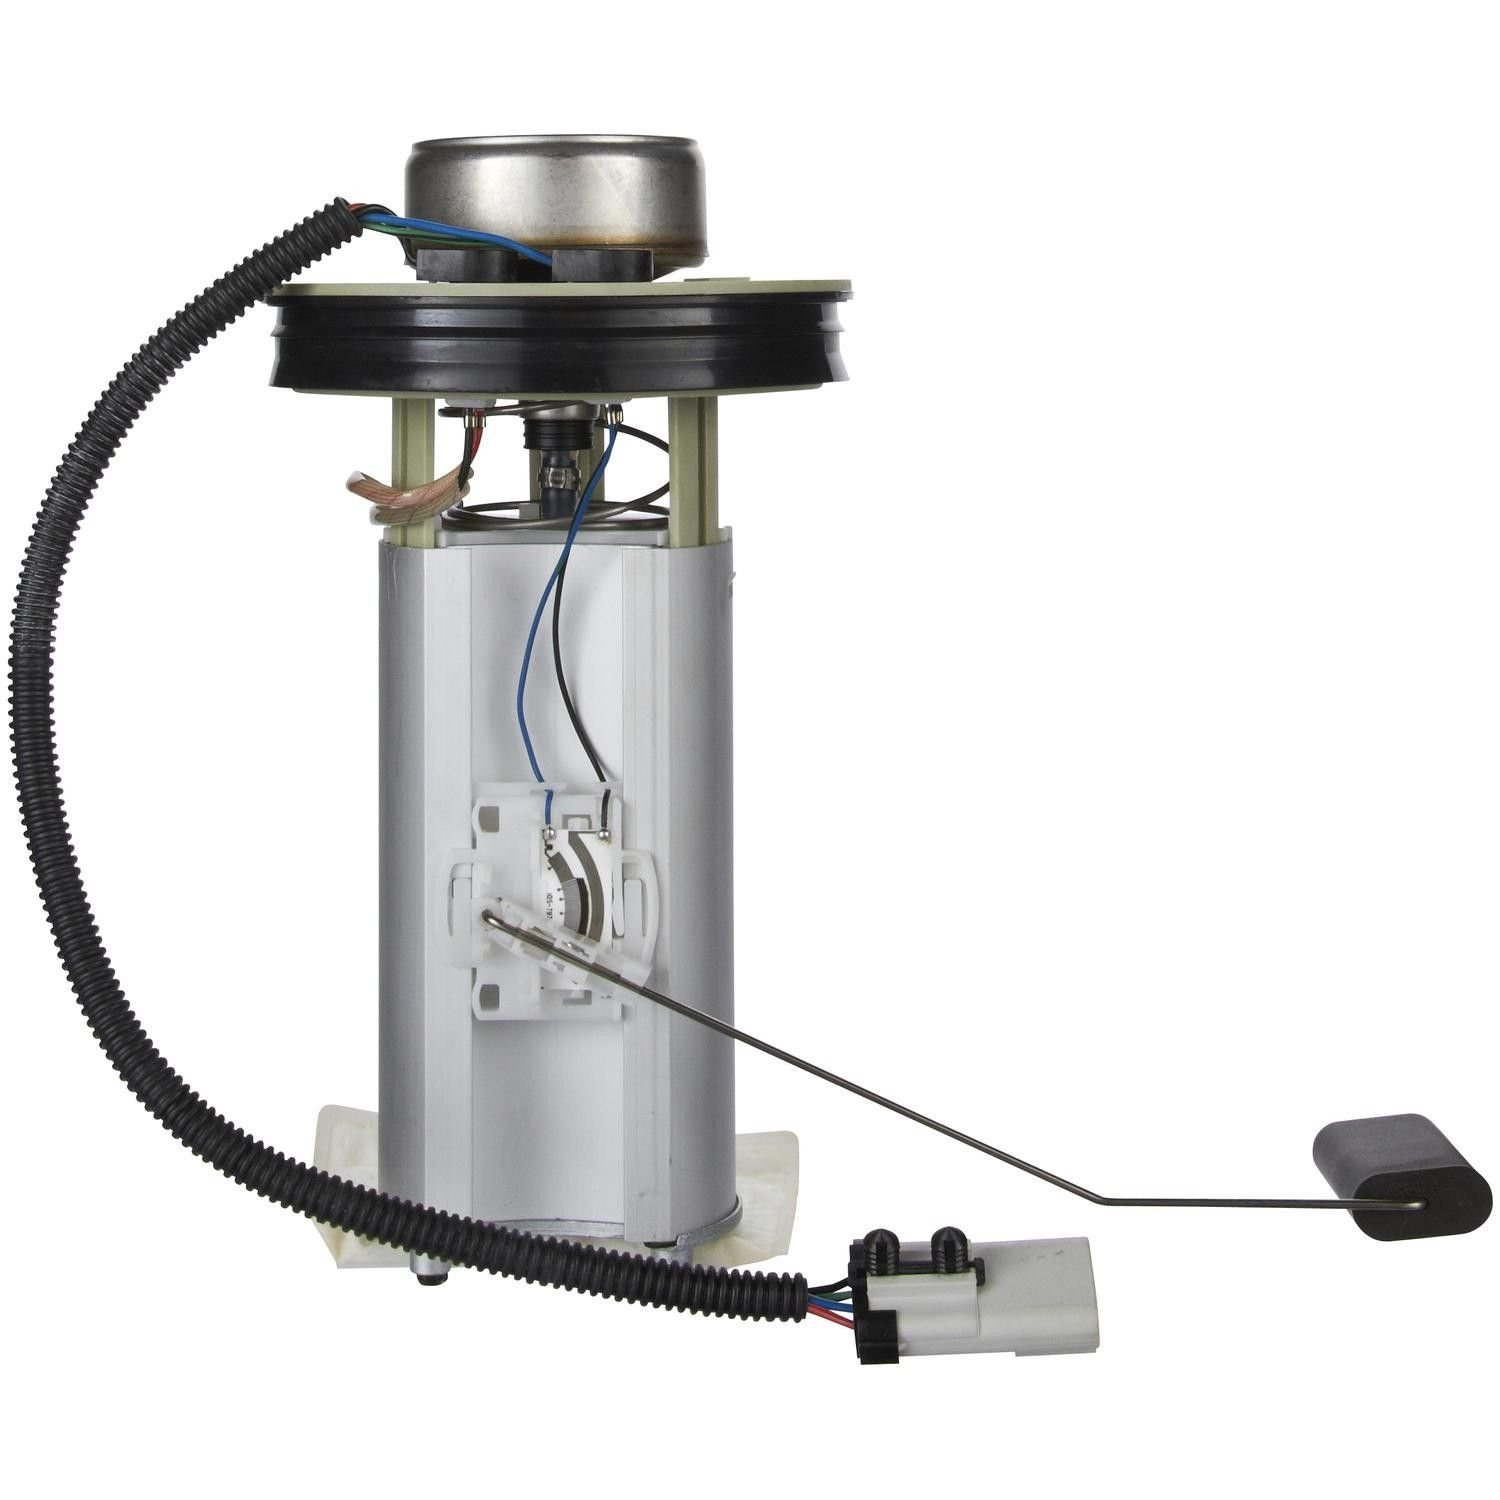 Dodge Dakota Fuel Pump Module Assembly Replacement Airtex Autobest Wiring 2000 Spectra Sp7128m 24 Gallons Tank Internal Strainer Included